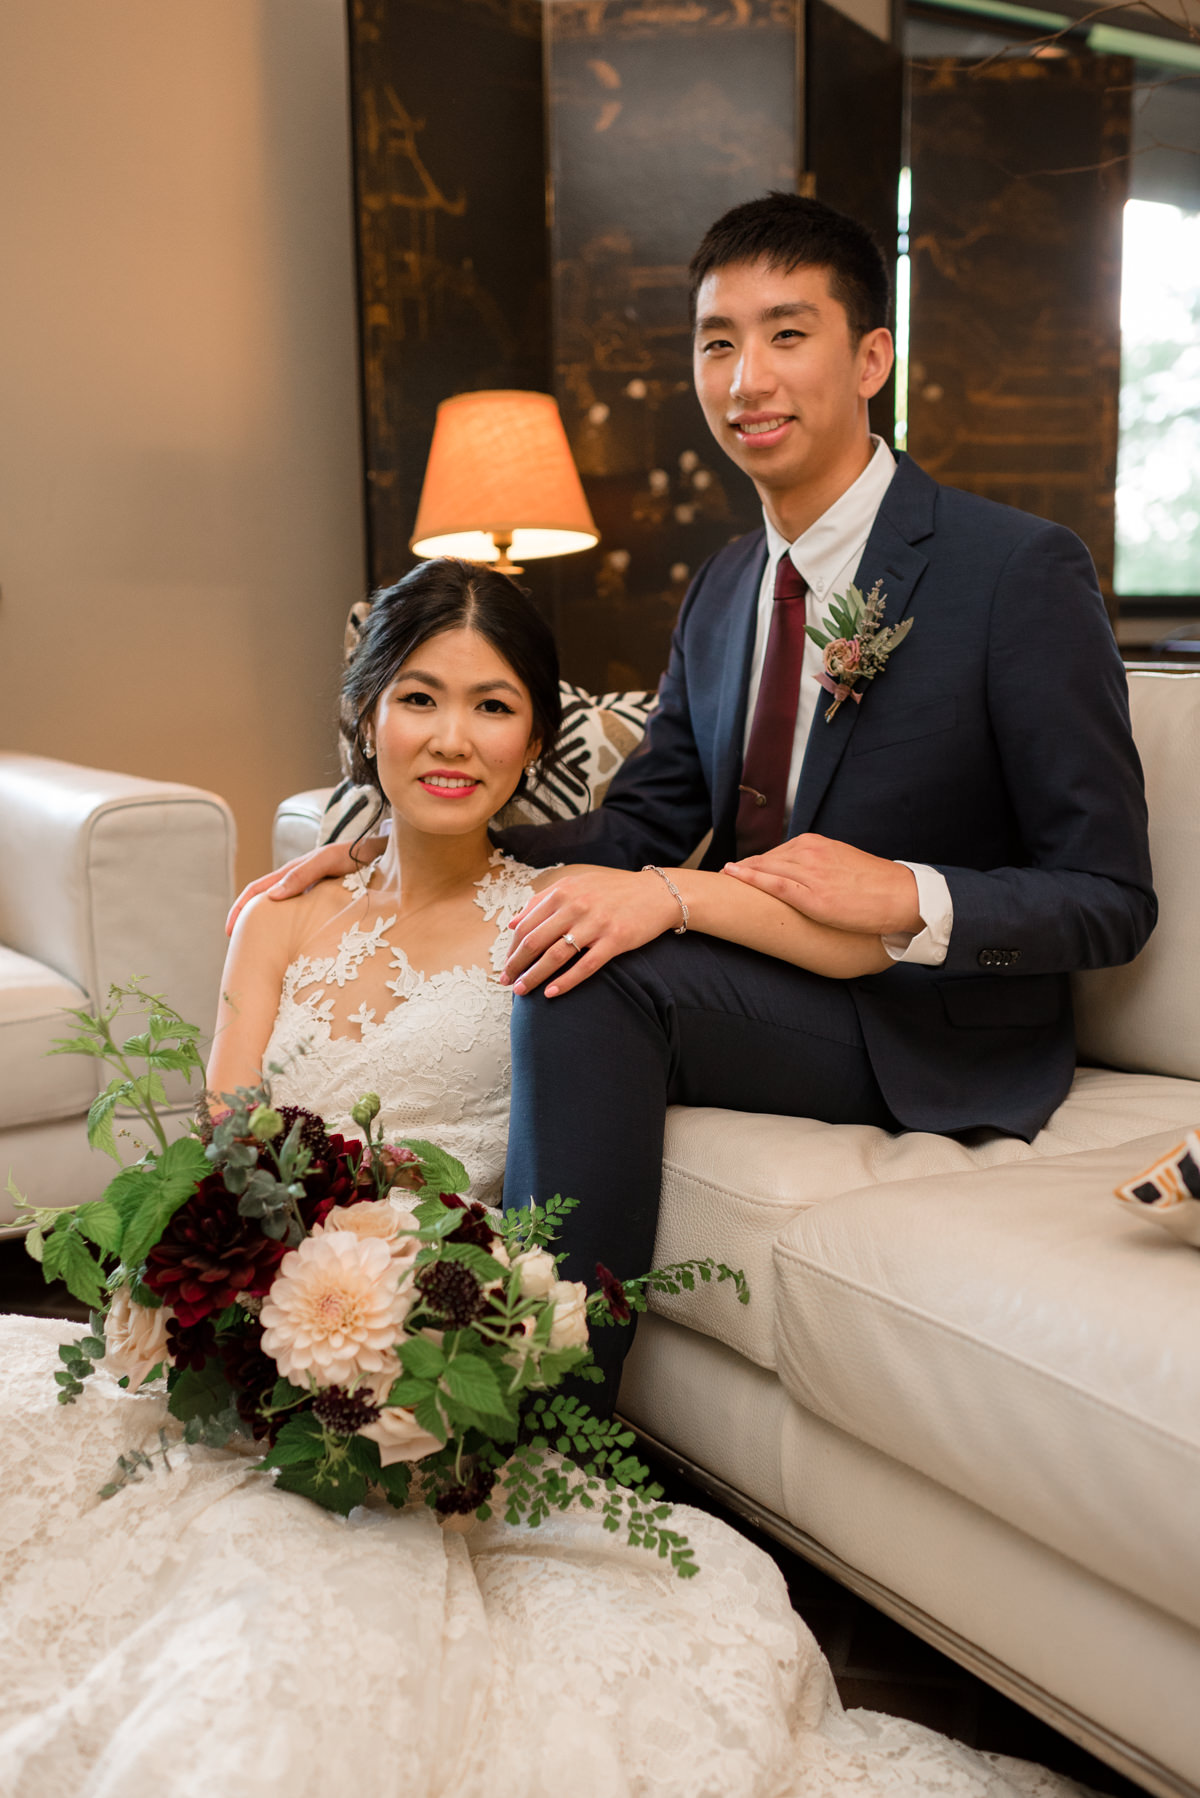 Andrew Tat - Documentary Wedding Photography - JM Cellars - Woodinville, Washington -Tammy & Aaron - 16.jpg